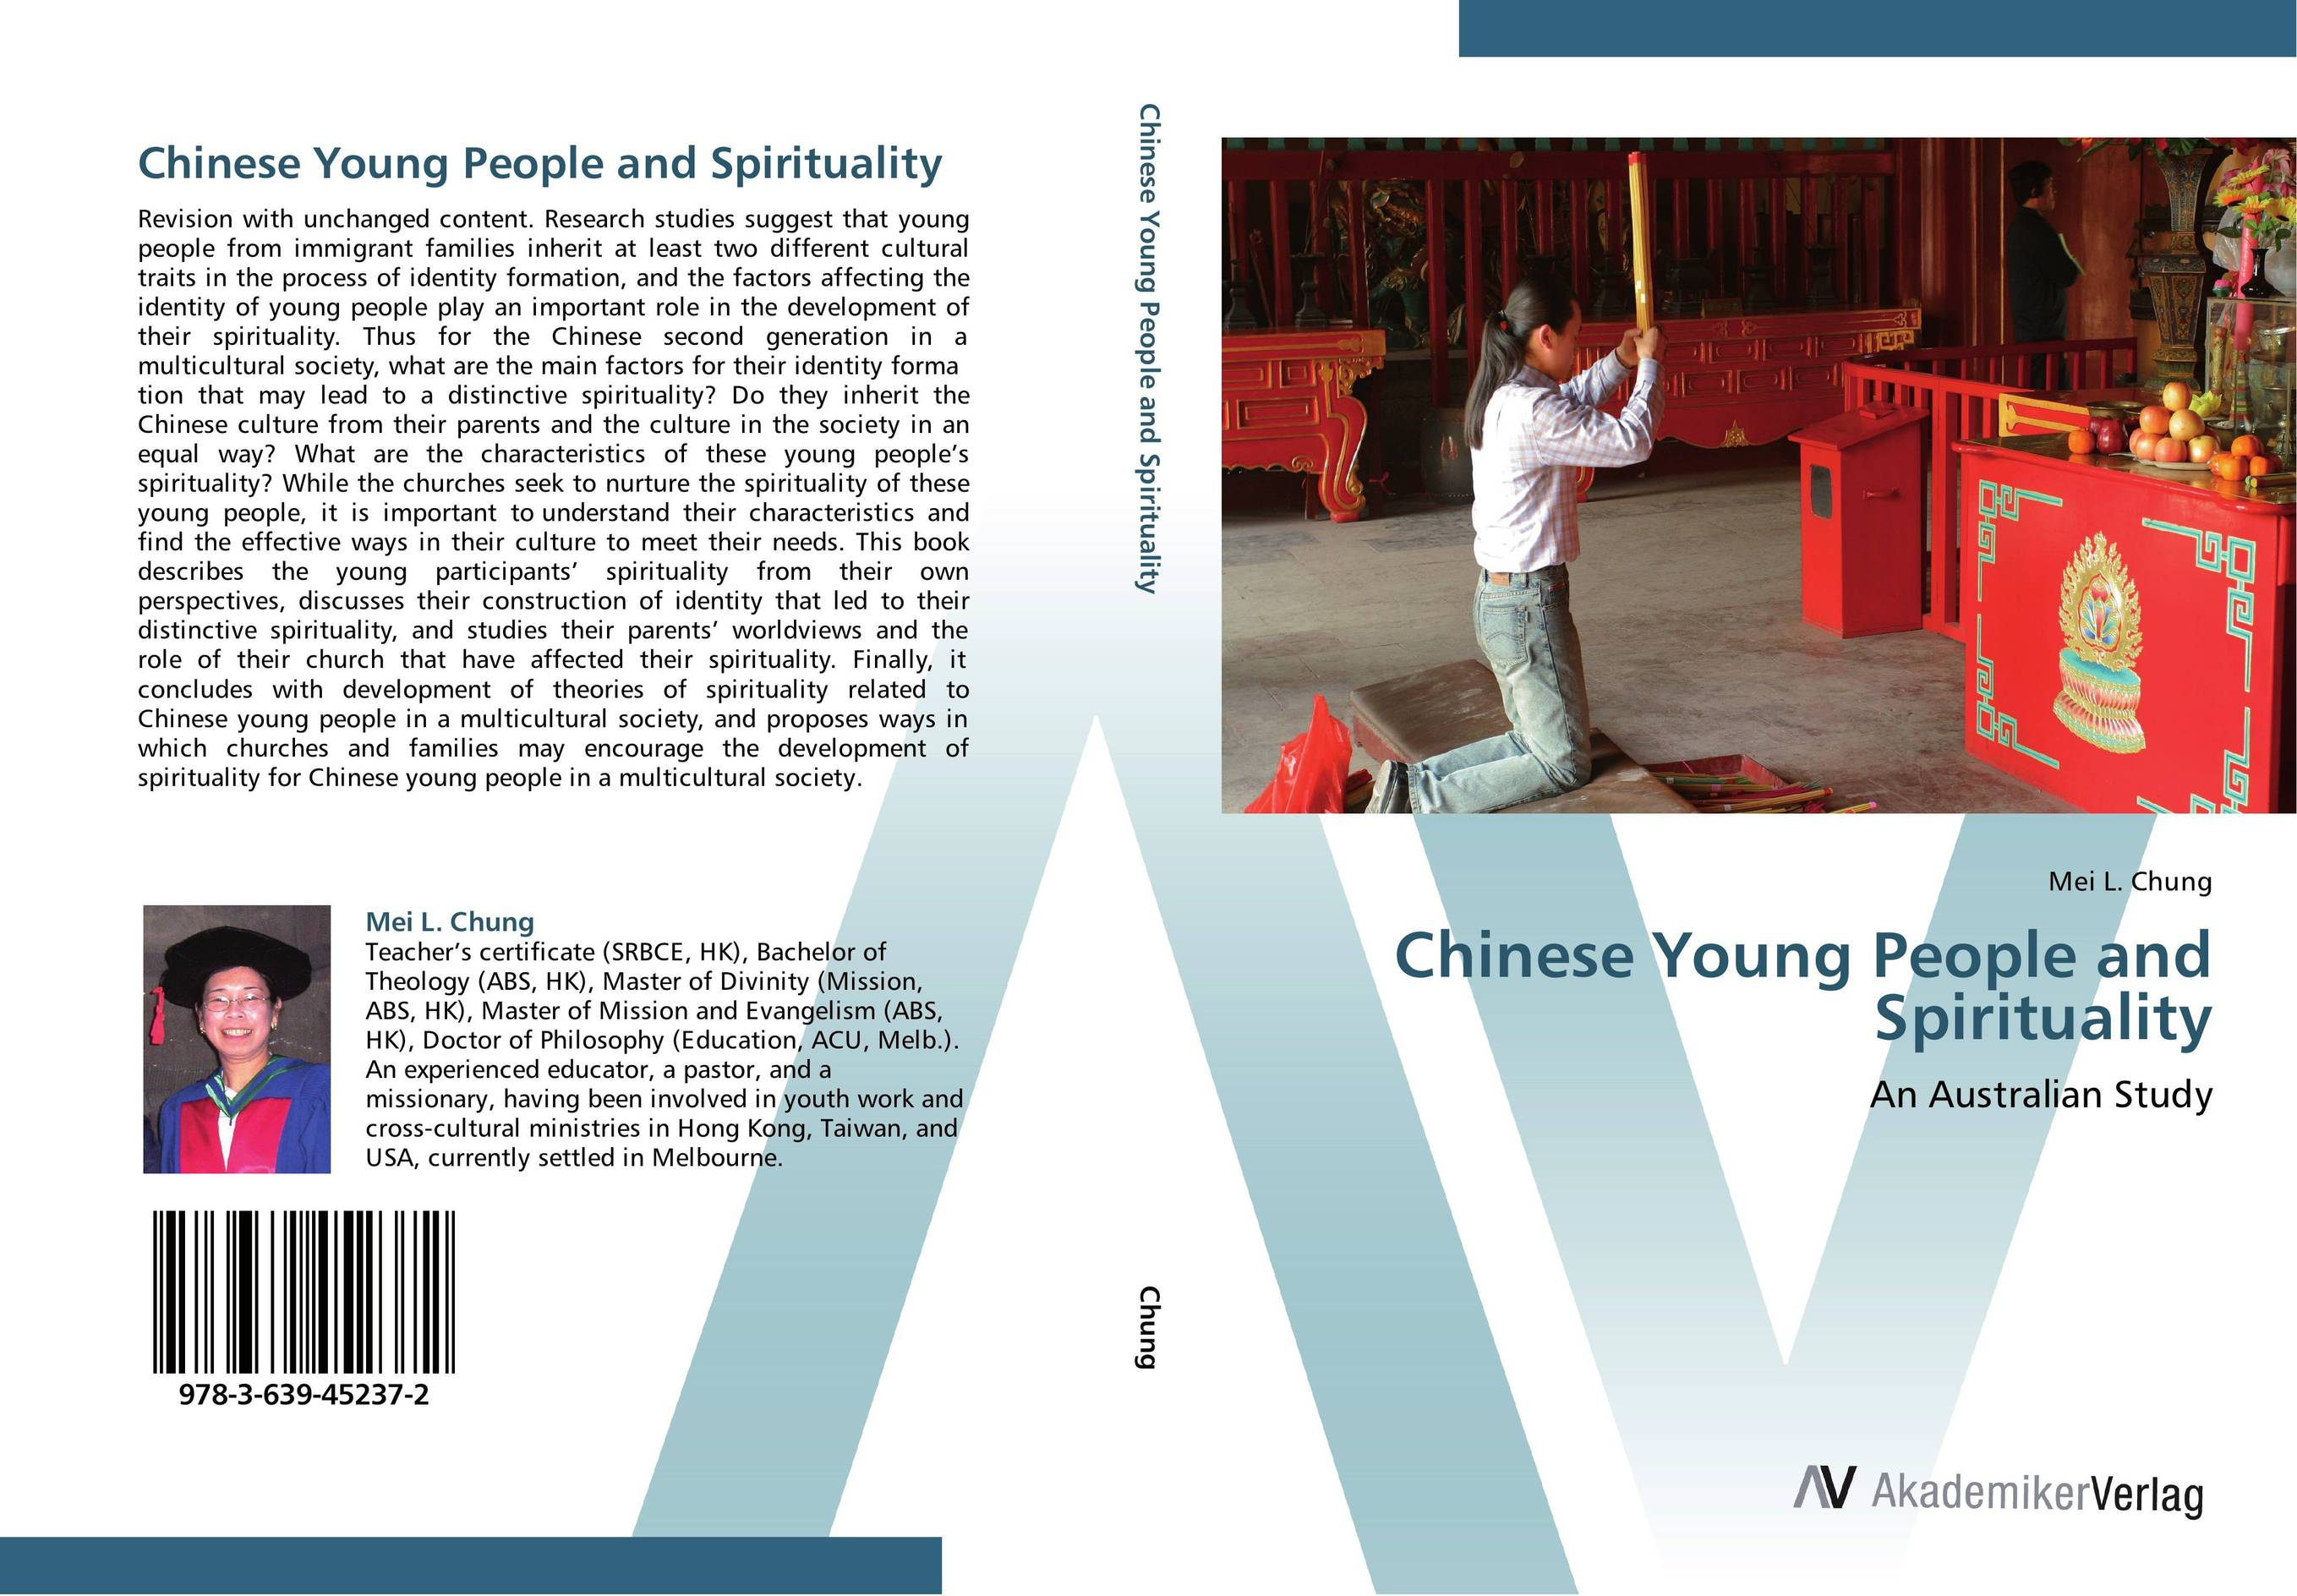 Chinese Young People and Spirituality voluntary associations in tsarist russia – science patriotism and civil society